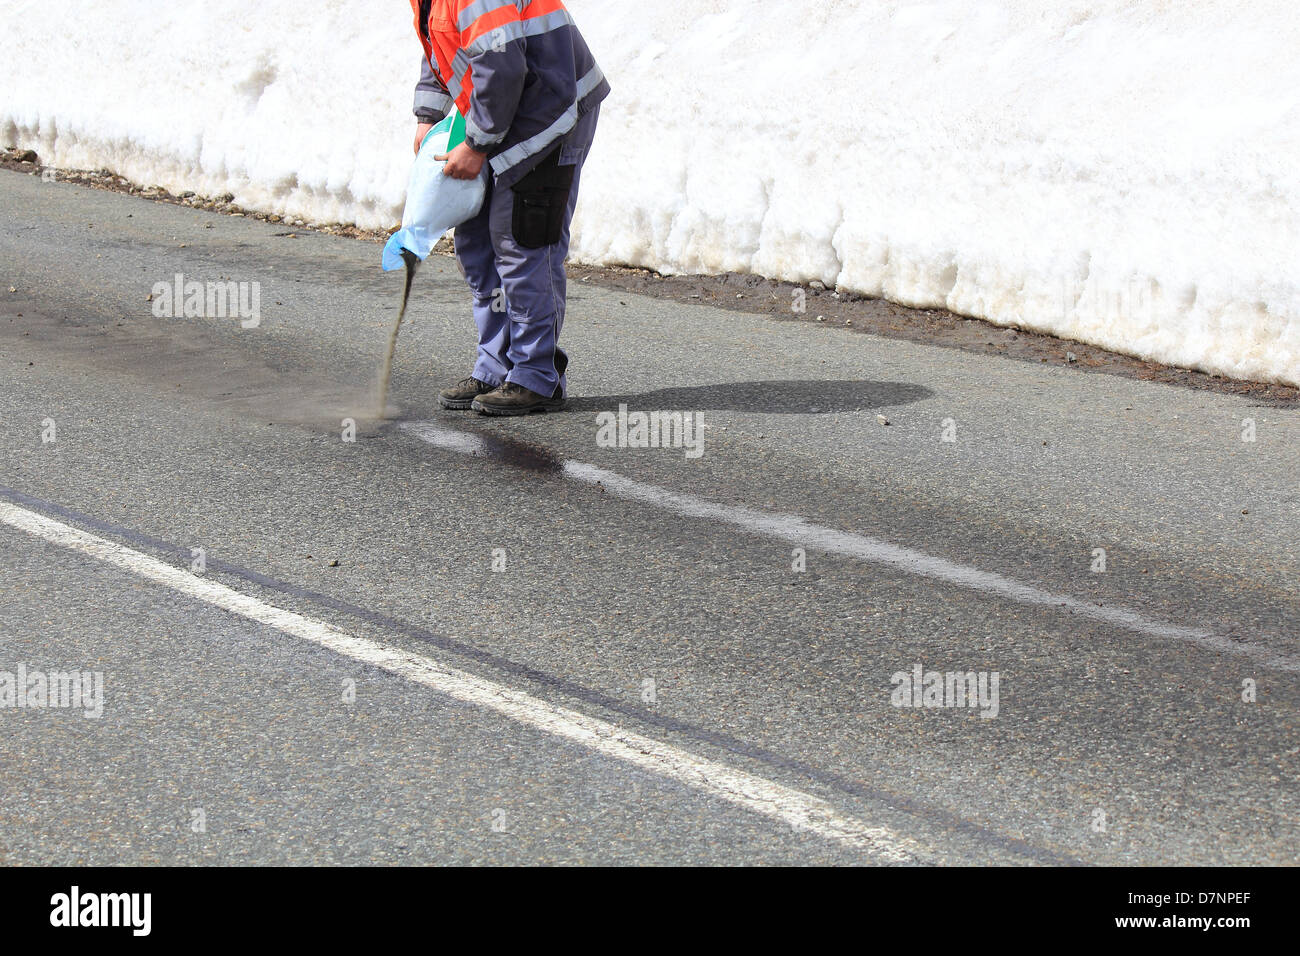 Road maintenance cleaning a Trace of oil in winter - Stock Image